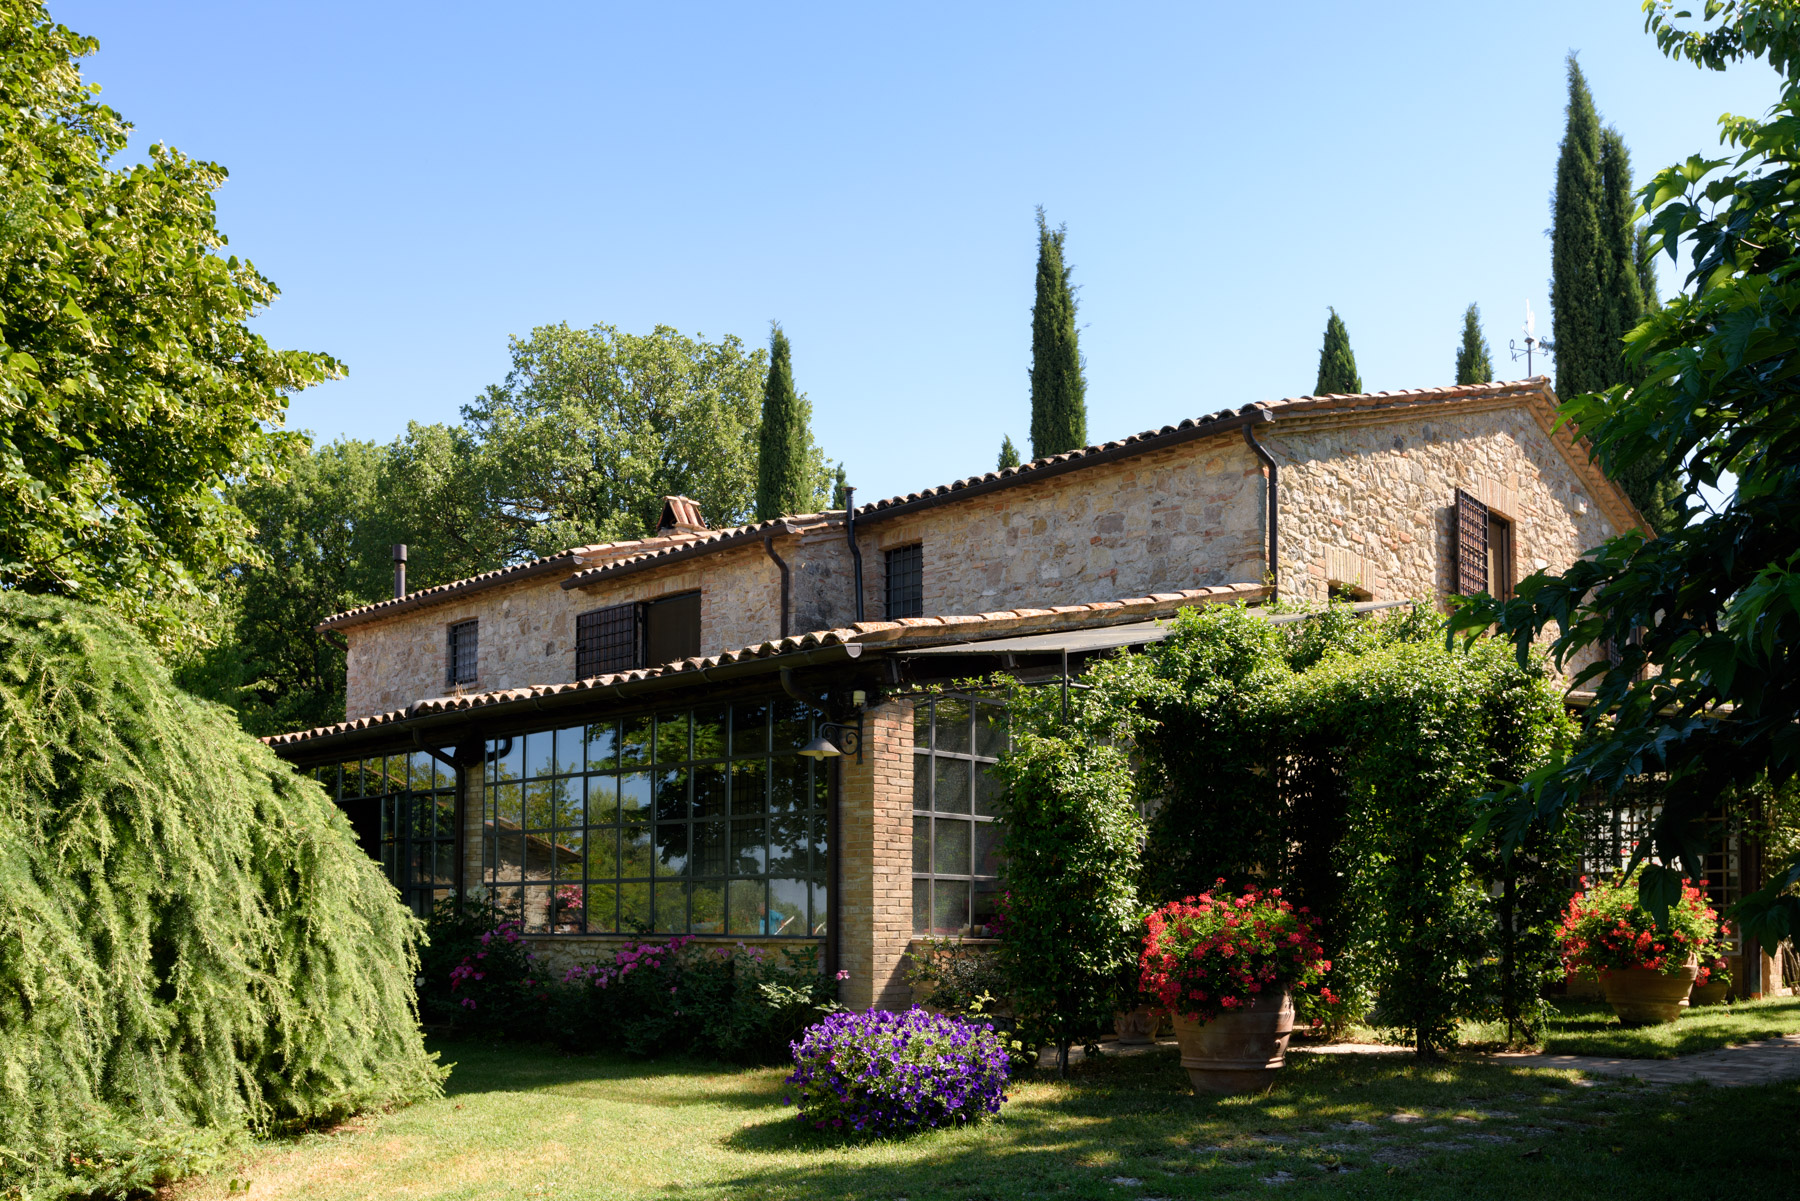 Single Family Home for Sale at Charming house overlooking the town of Todi Todi, Perugia Italy